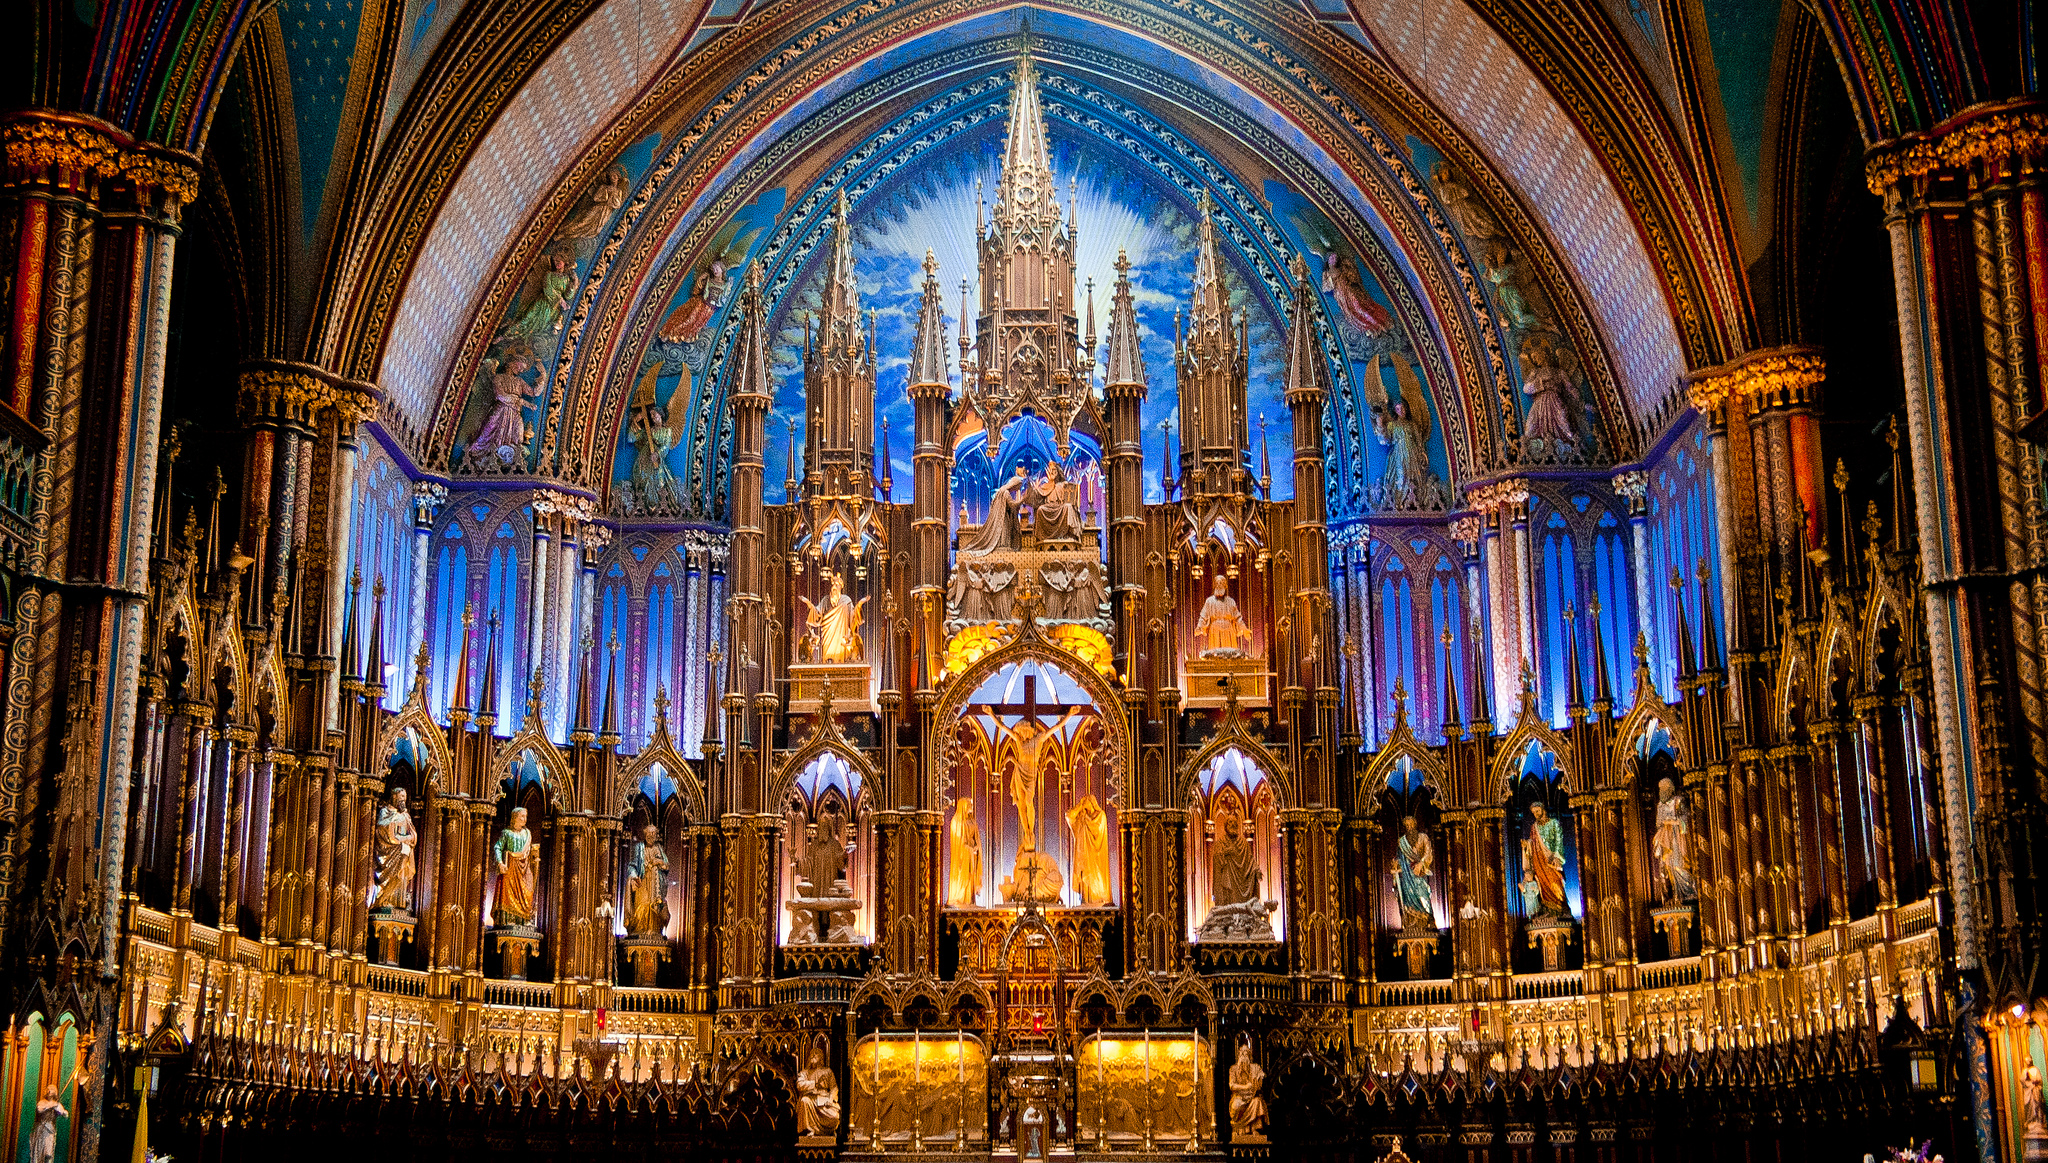 The church of Notre Dame in Canada